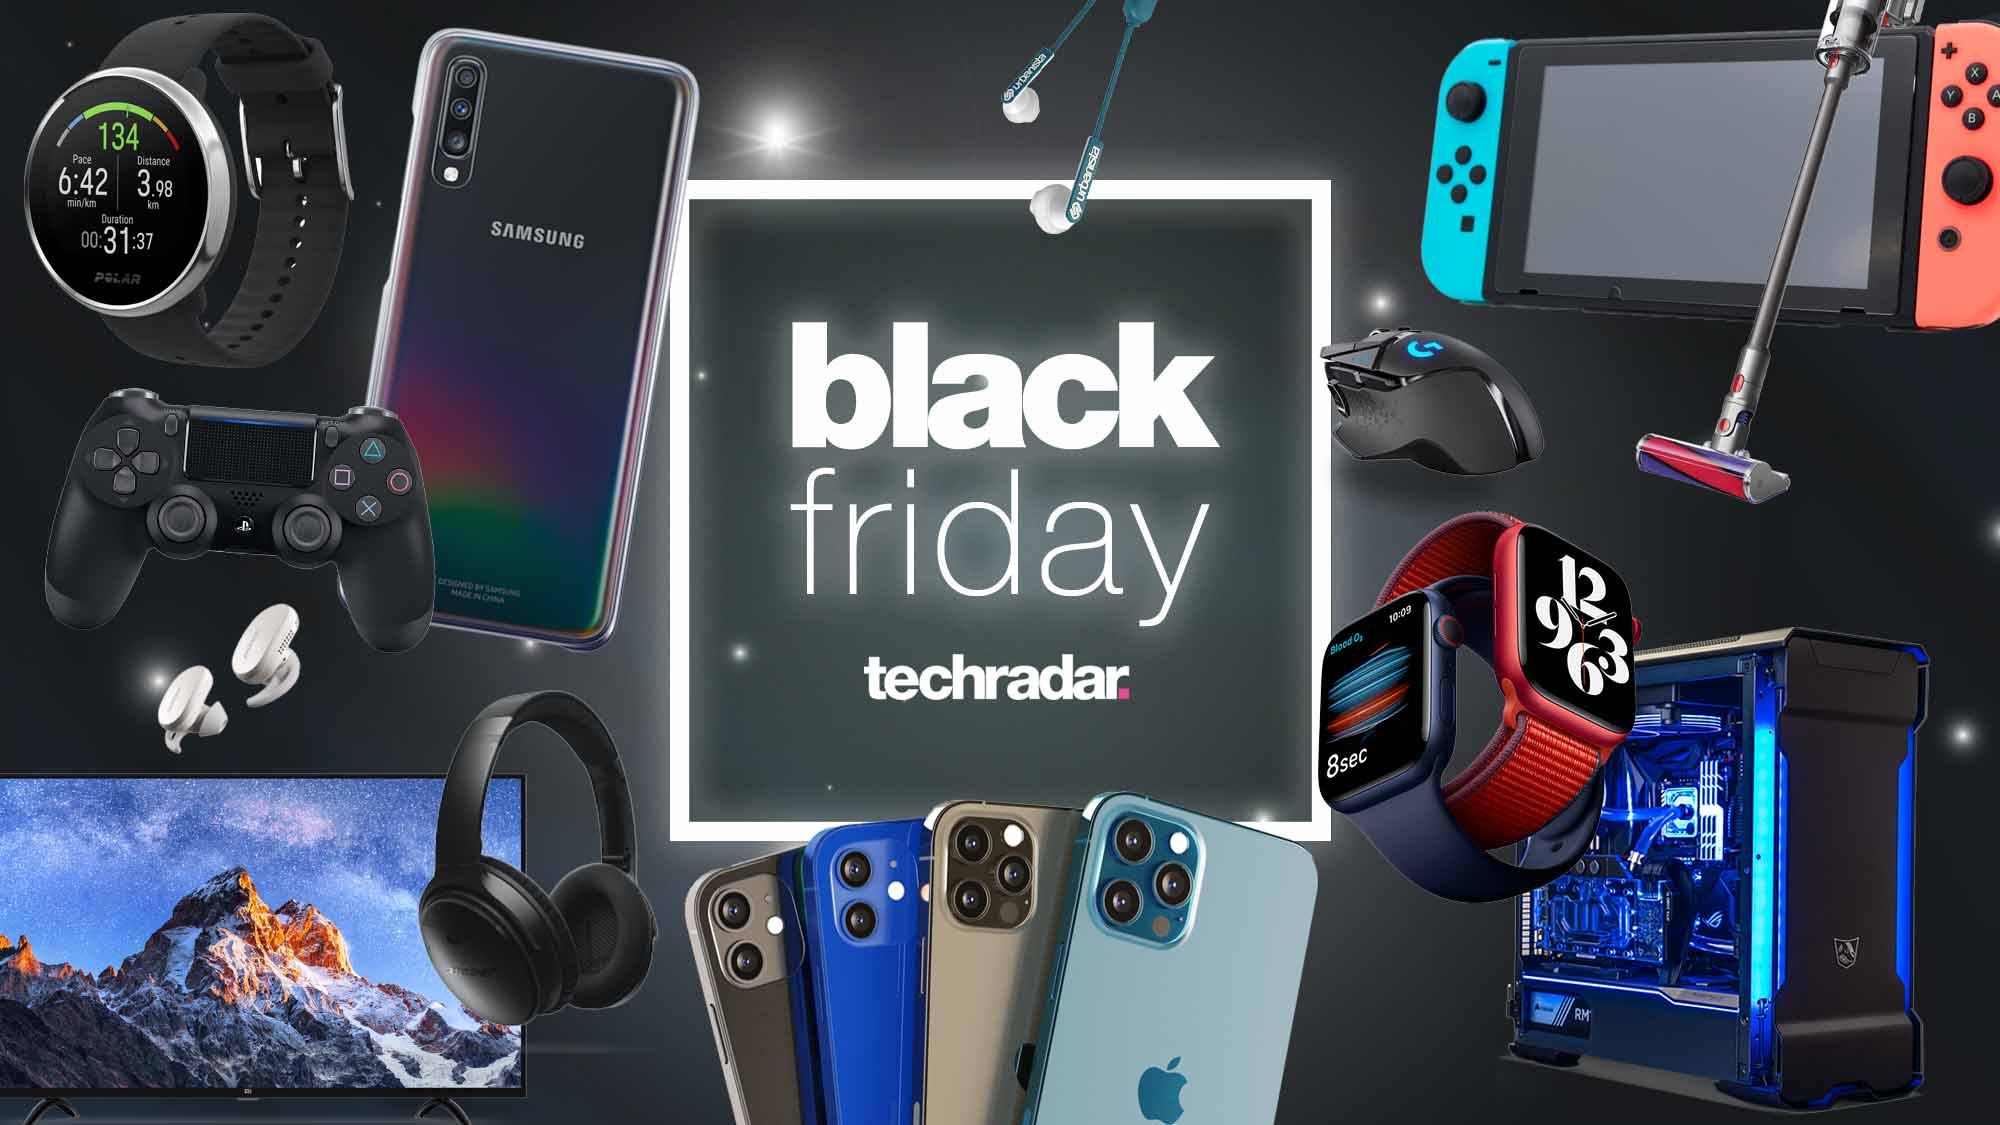 Biggest Deals Christmas Weekend 2021 Black Friday 2021 When It Is And The Deals We Expect To See Techradar